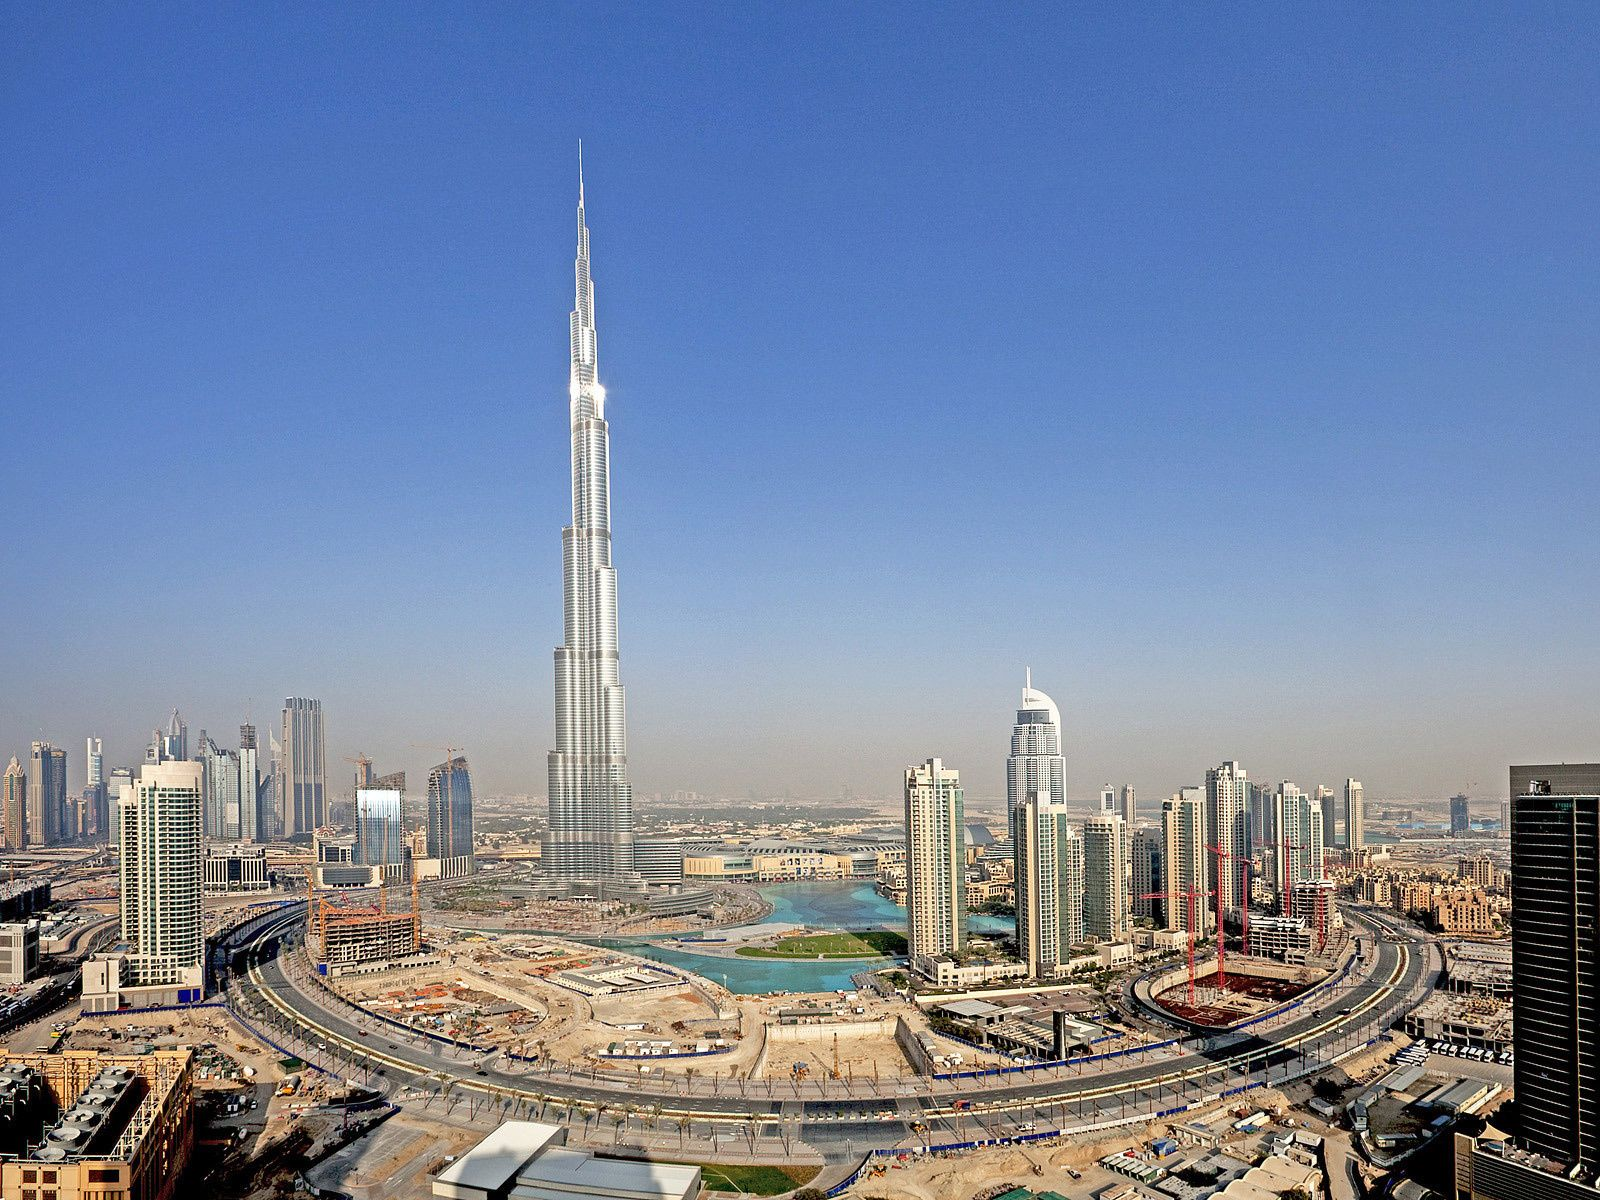 Burj Dubai Wallpapers Tower in dubai Wallpapers Burj  - burj khalifa tower dubai wallpapers